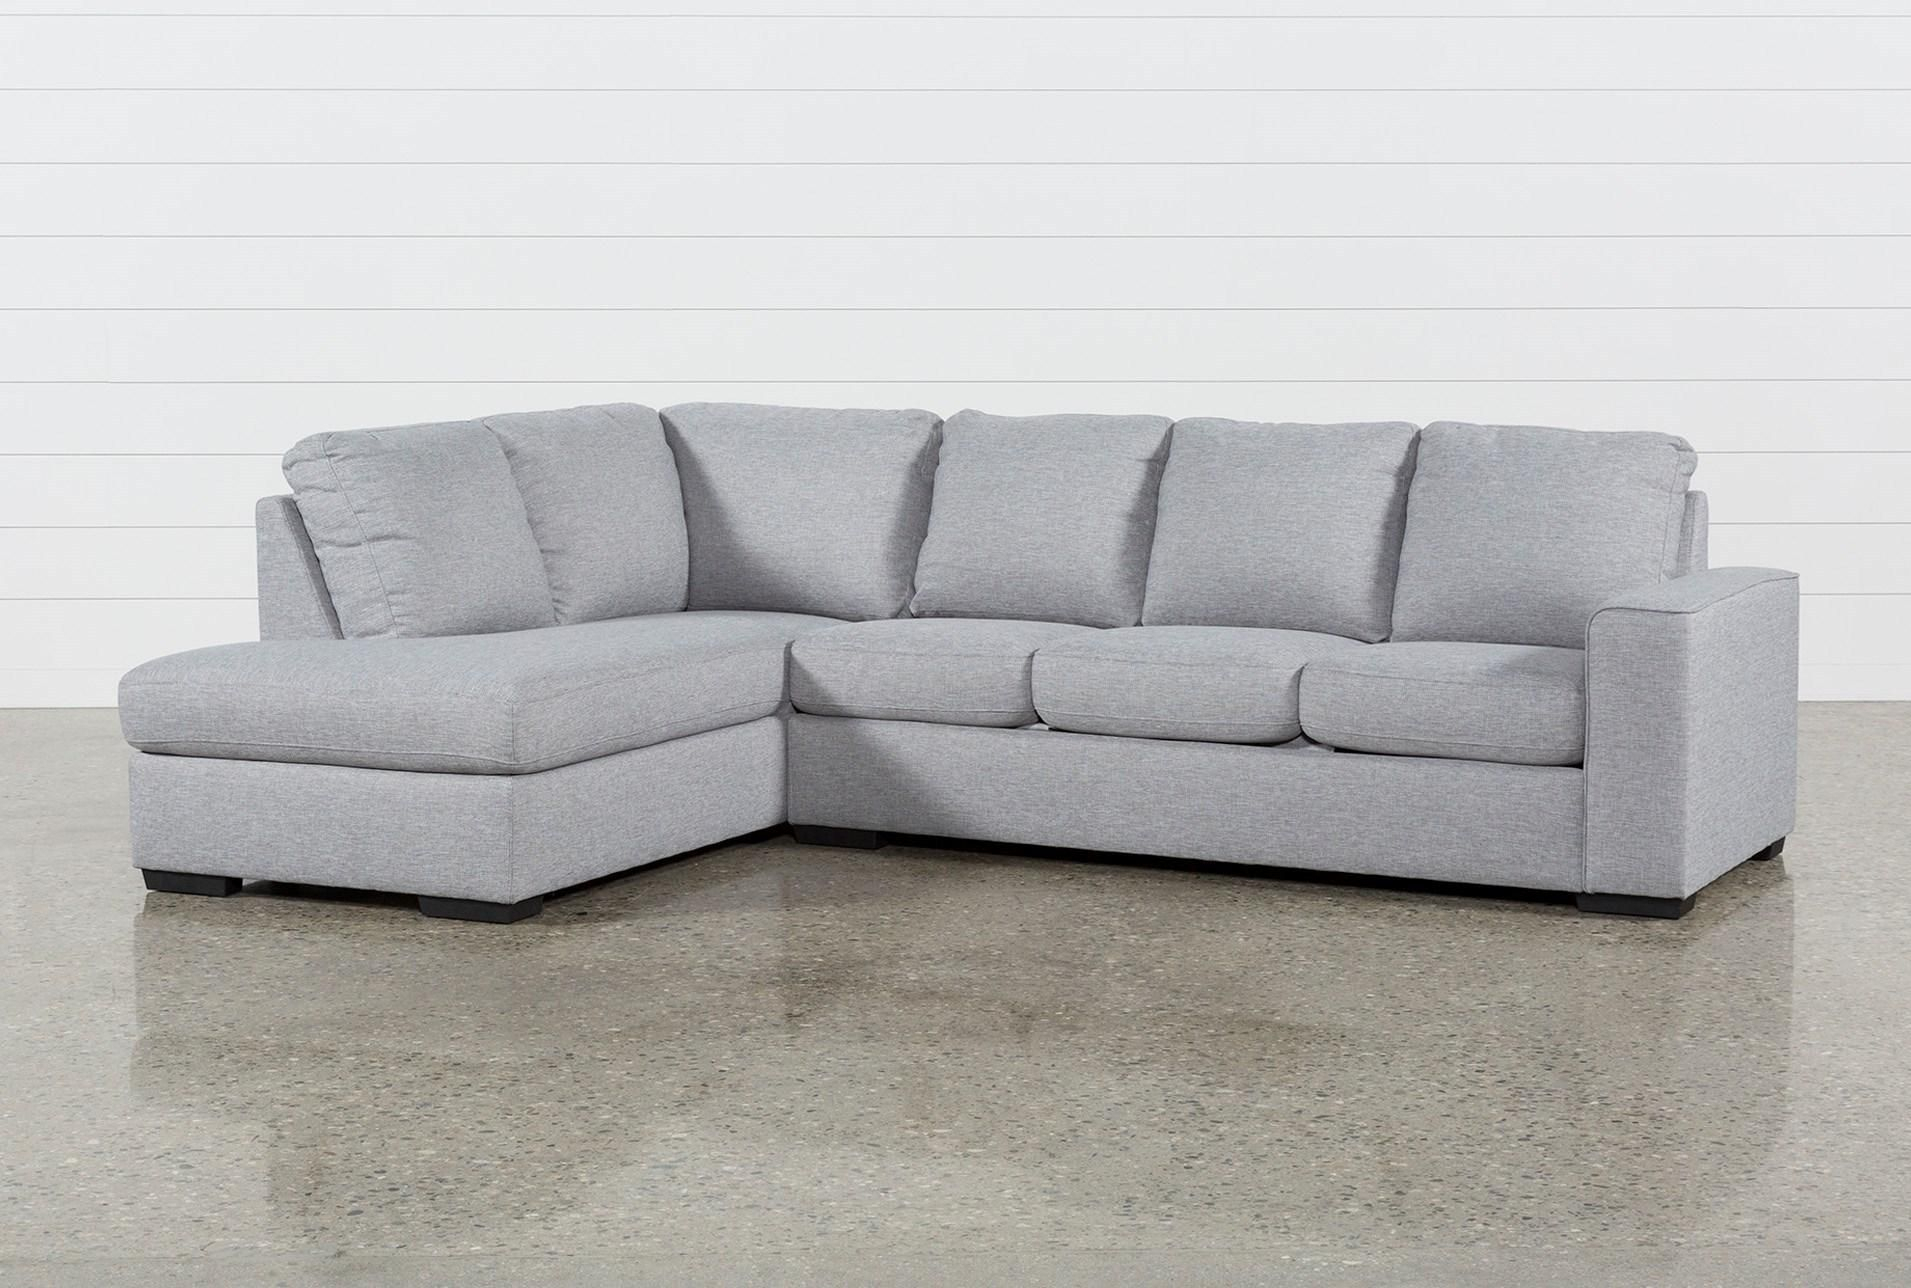 Lucy Grey 2 Piece Sectional W/laf Chaise In 2018 | Condo | Pinterest With Regard To Lucy Grey Sofa Chairs (View 2 of 25)